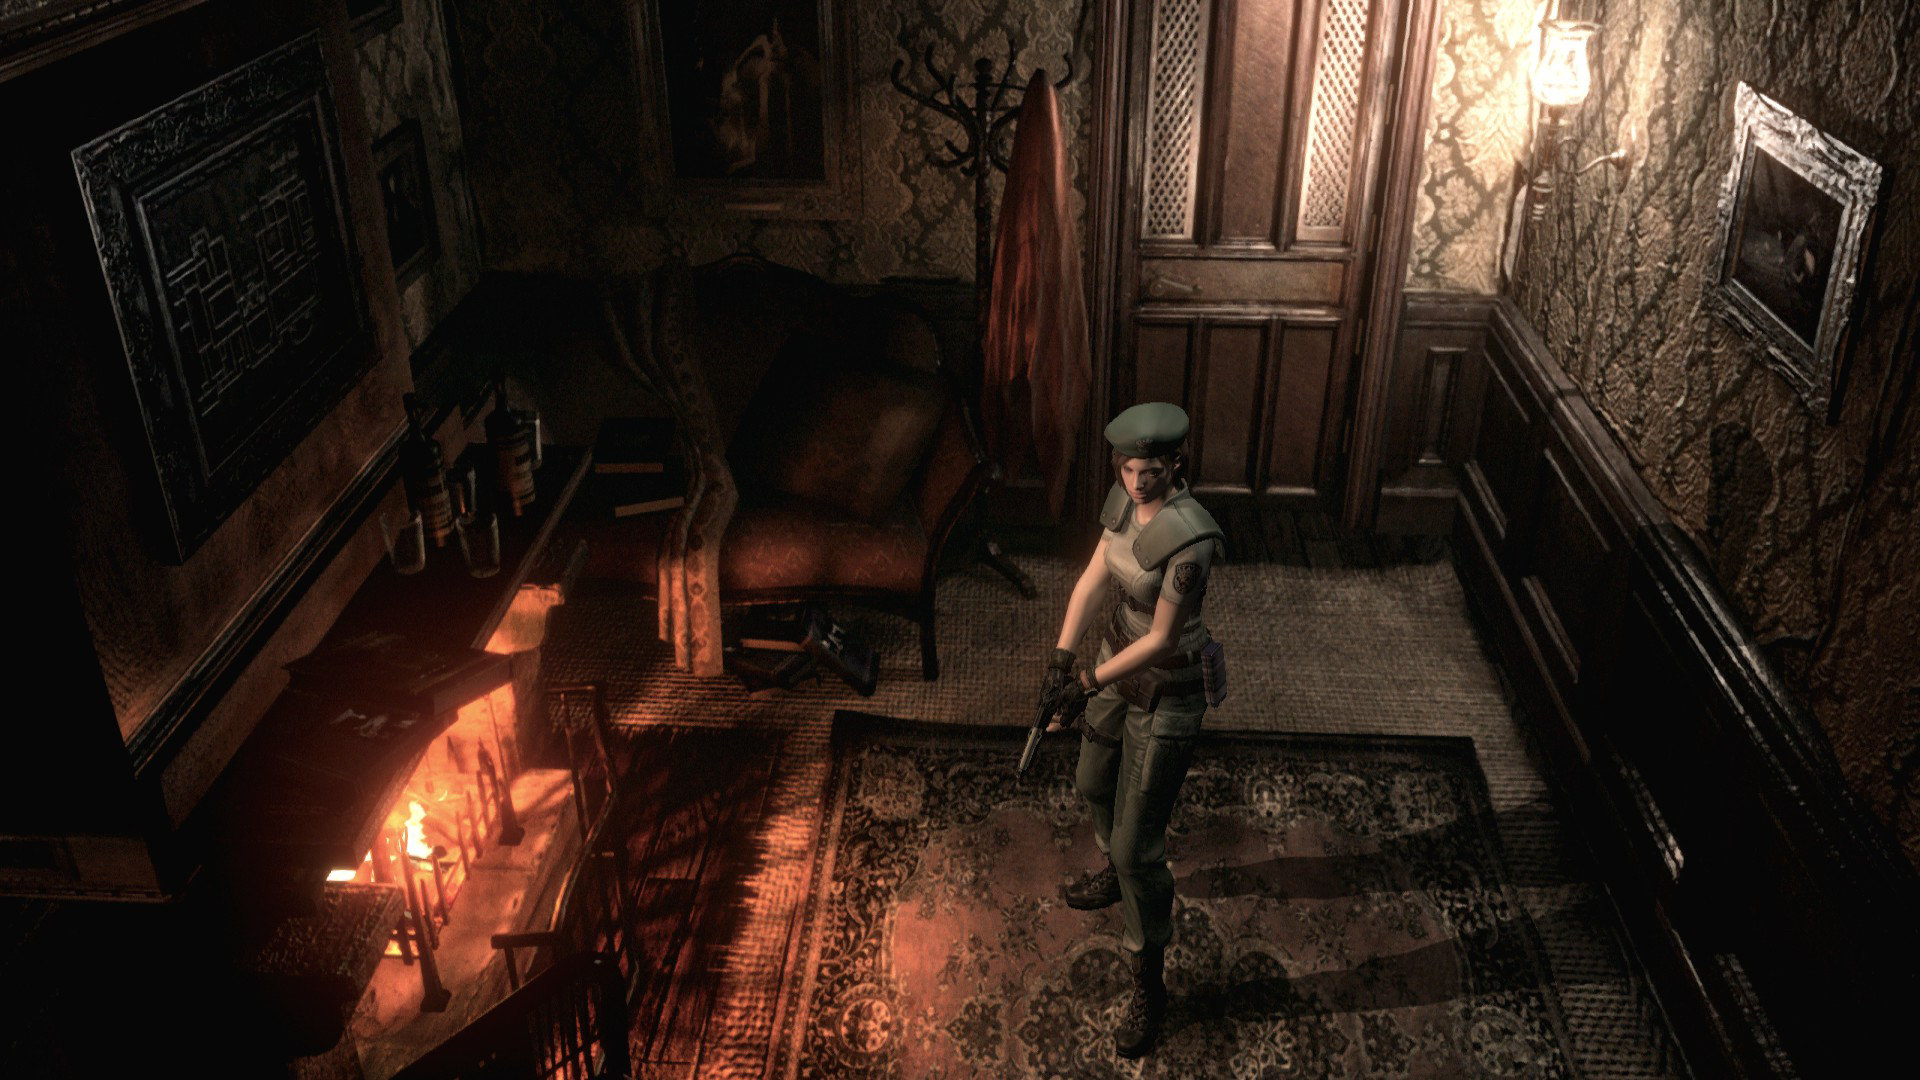 Resident evil screenshot 06 ps4 ps3 us 13jan15.0